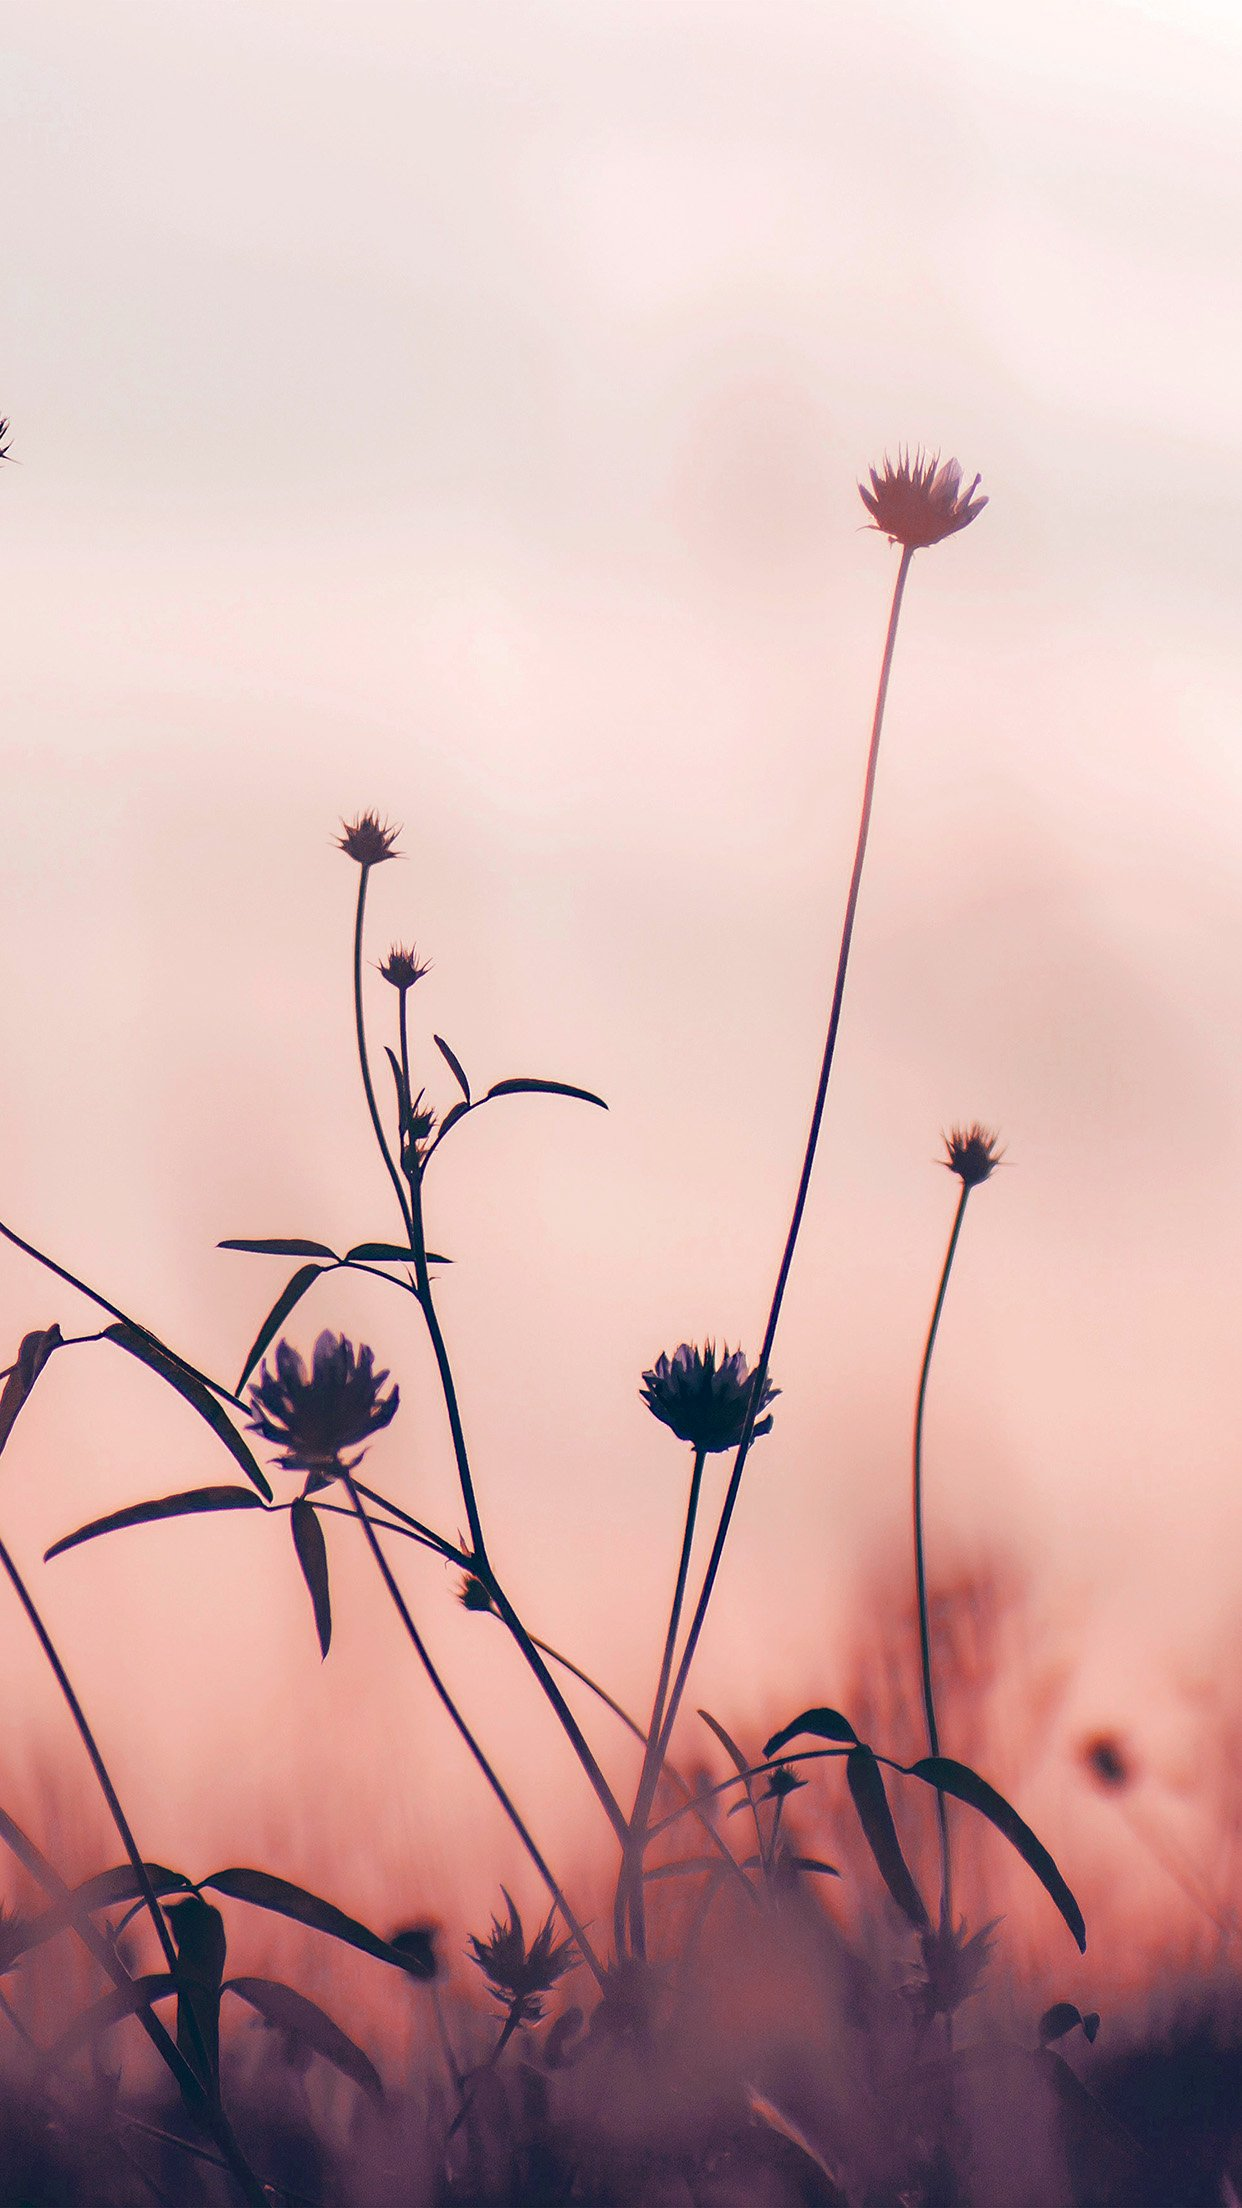 Where to Find Flower Wallpaper For Your iPhone?